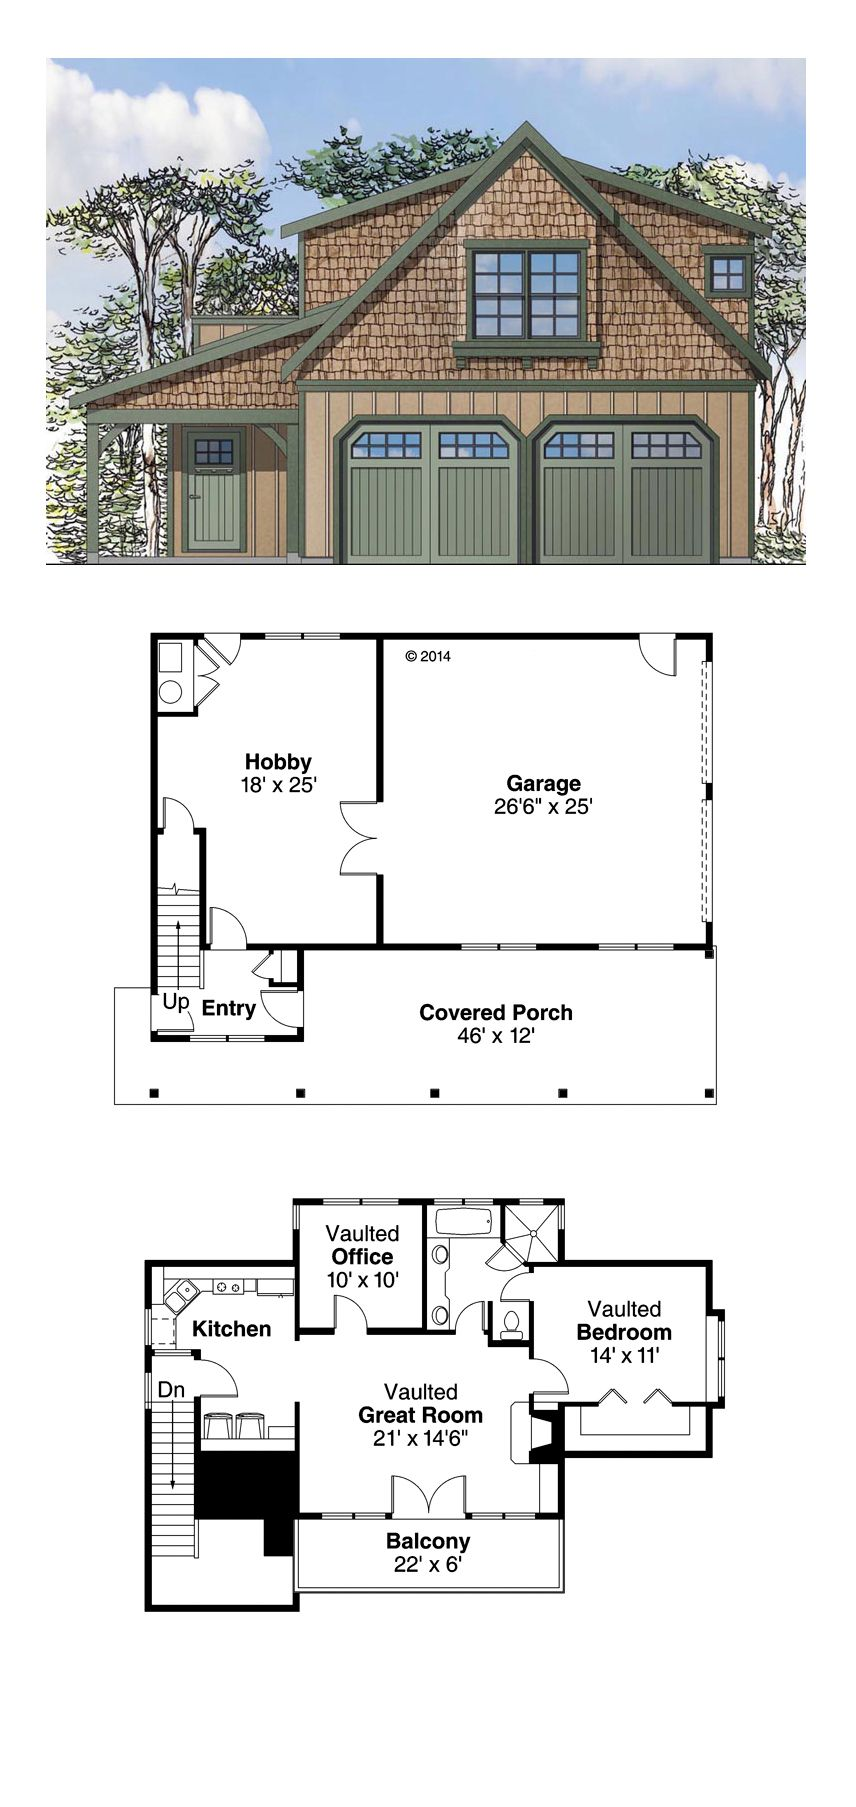 Garage apartment plan 41153 total living area 946 sq for Garage apartment plans 1 bedroom